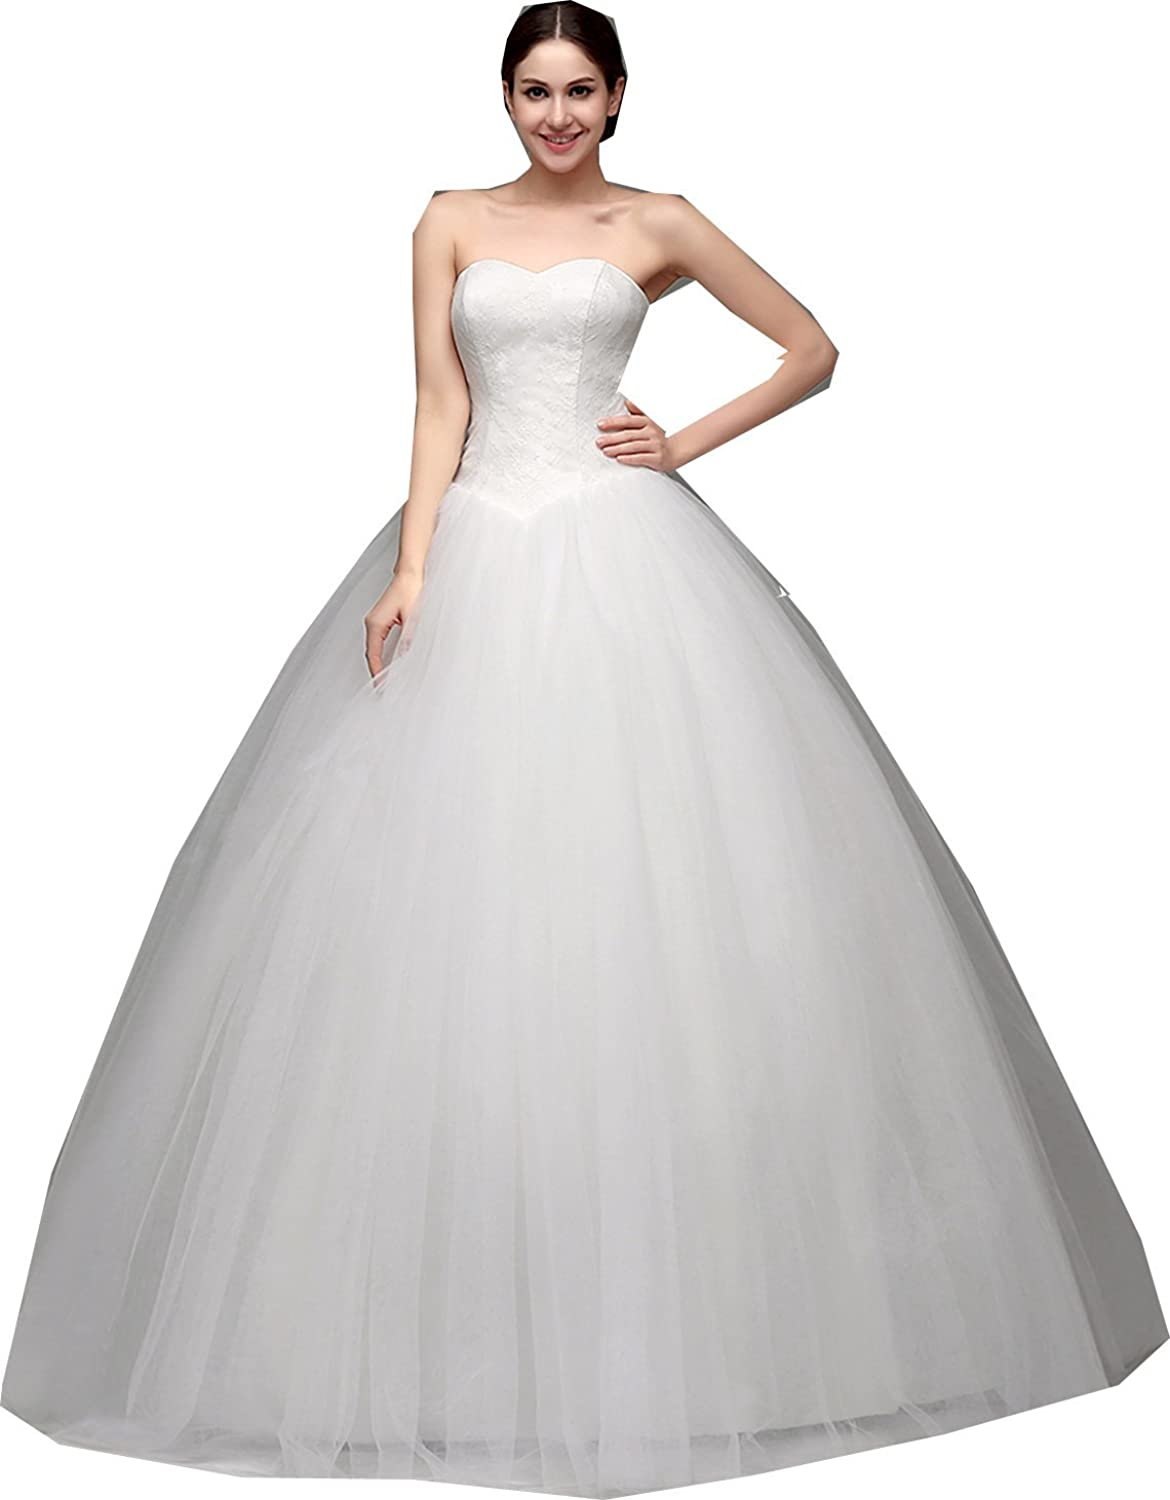 EieenDor Women's Sweetheart Tulle Wedding Dresses Simple Bridal Dress Elegant Ball Gown White